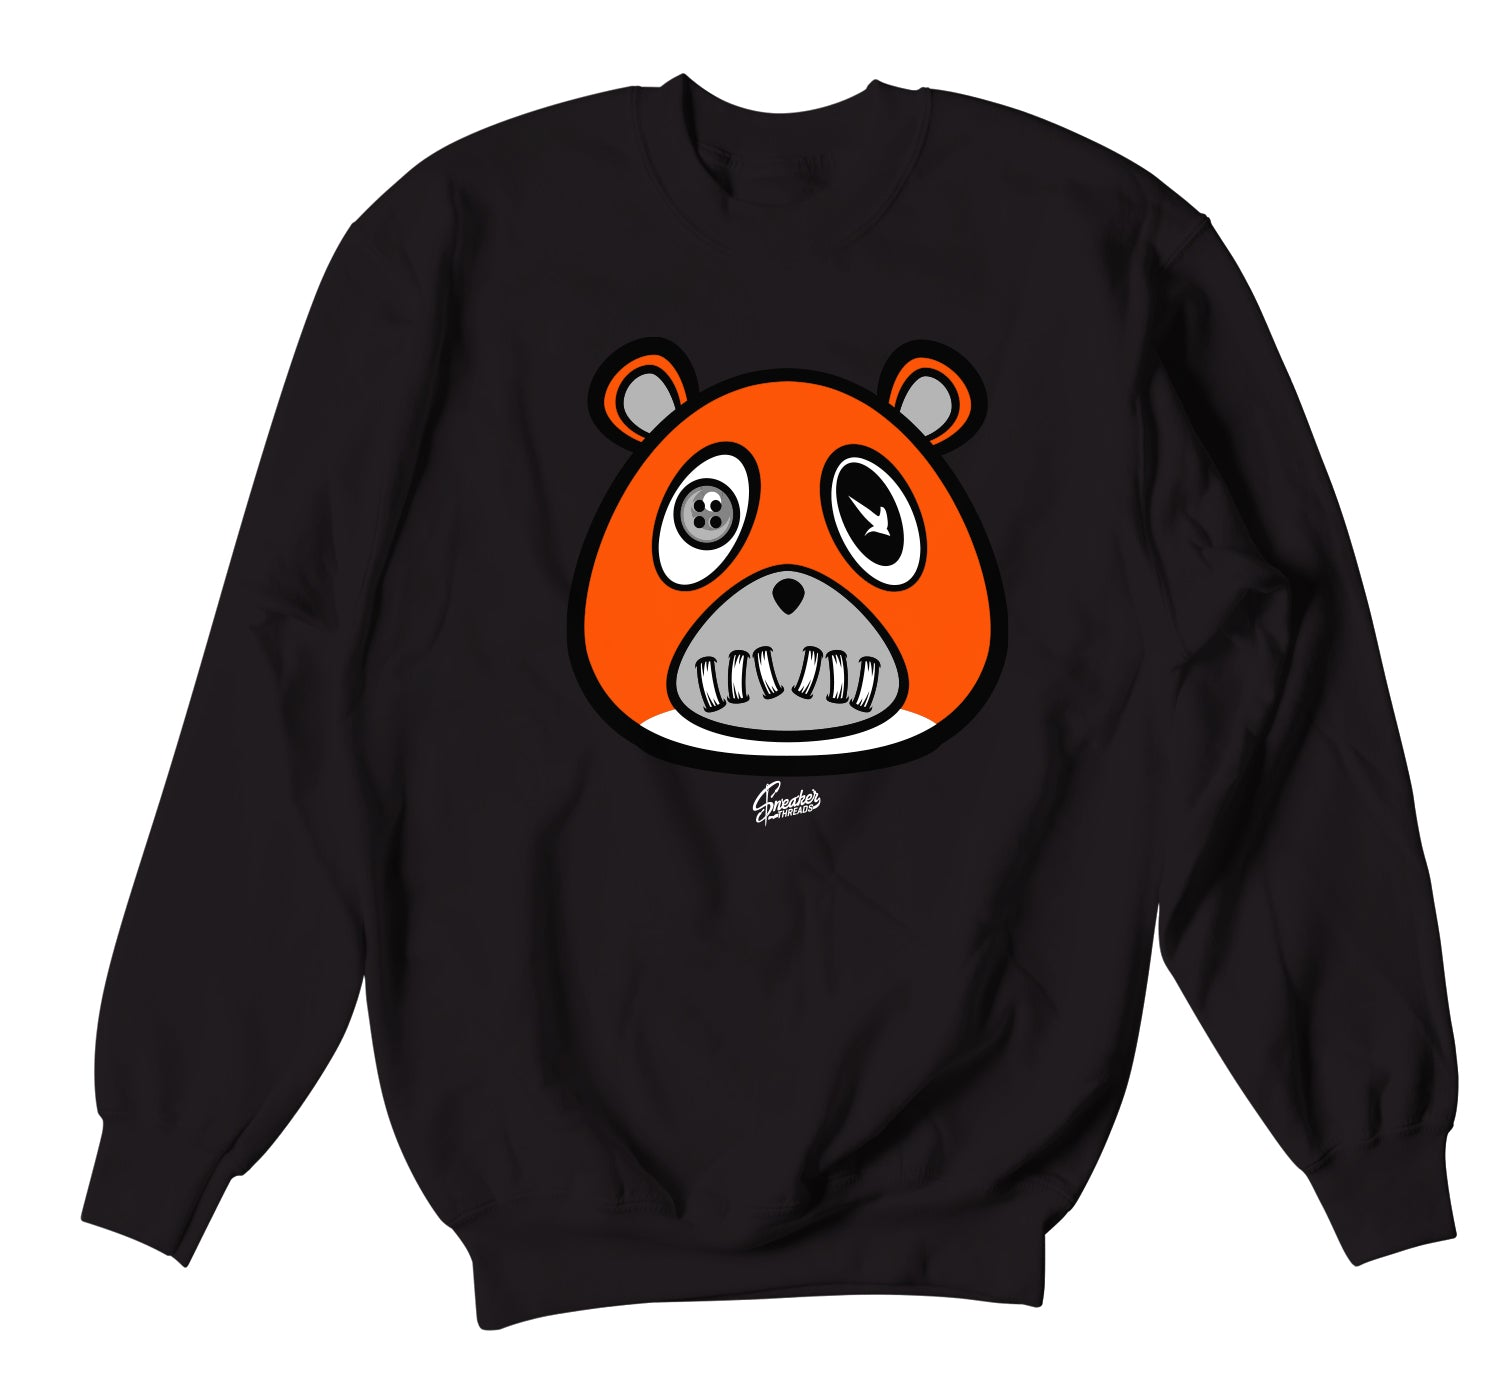 Jordan Starfish Sweater - ST Bear - Black